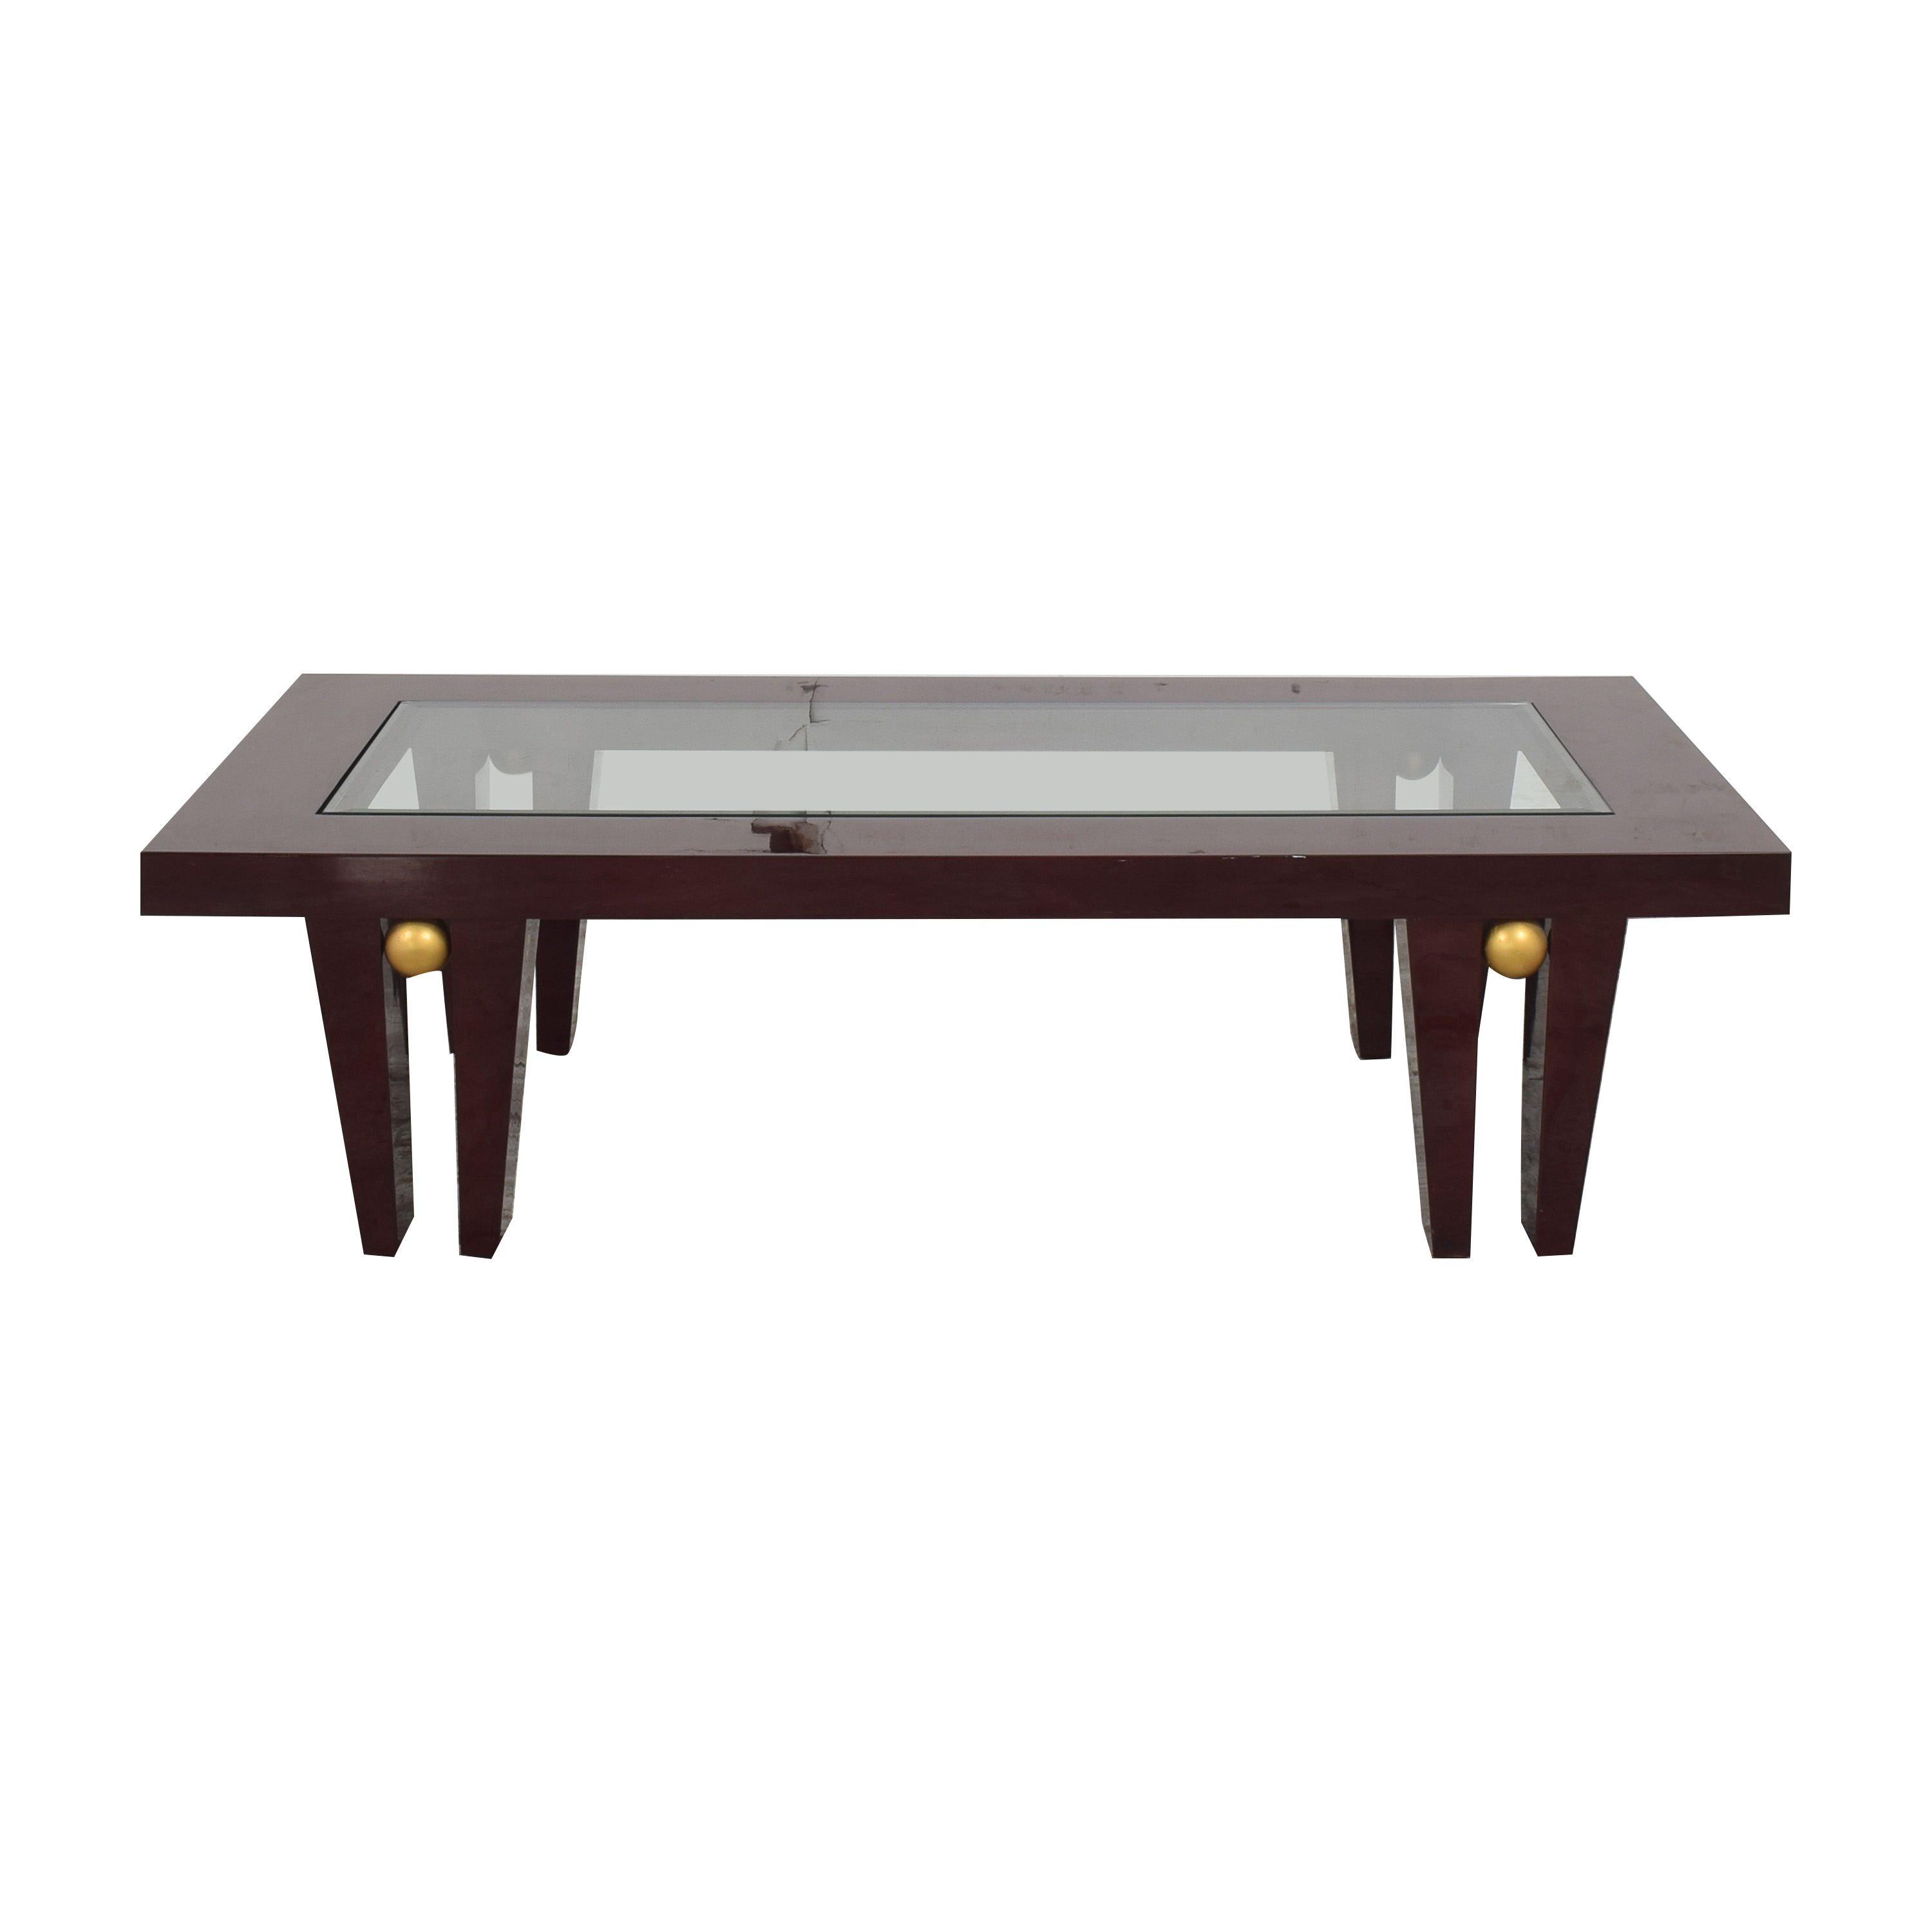 Evanson Studios Evanson Studios Astor Coffee Table dark red